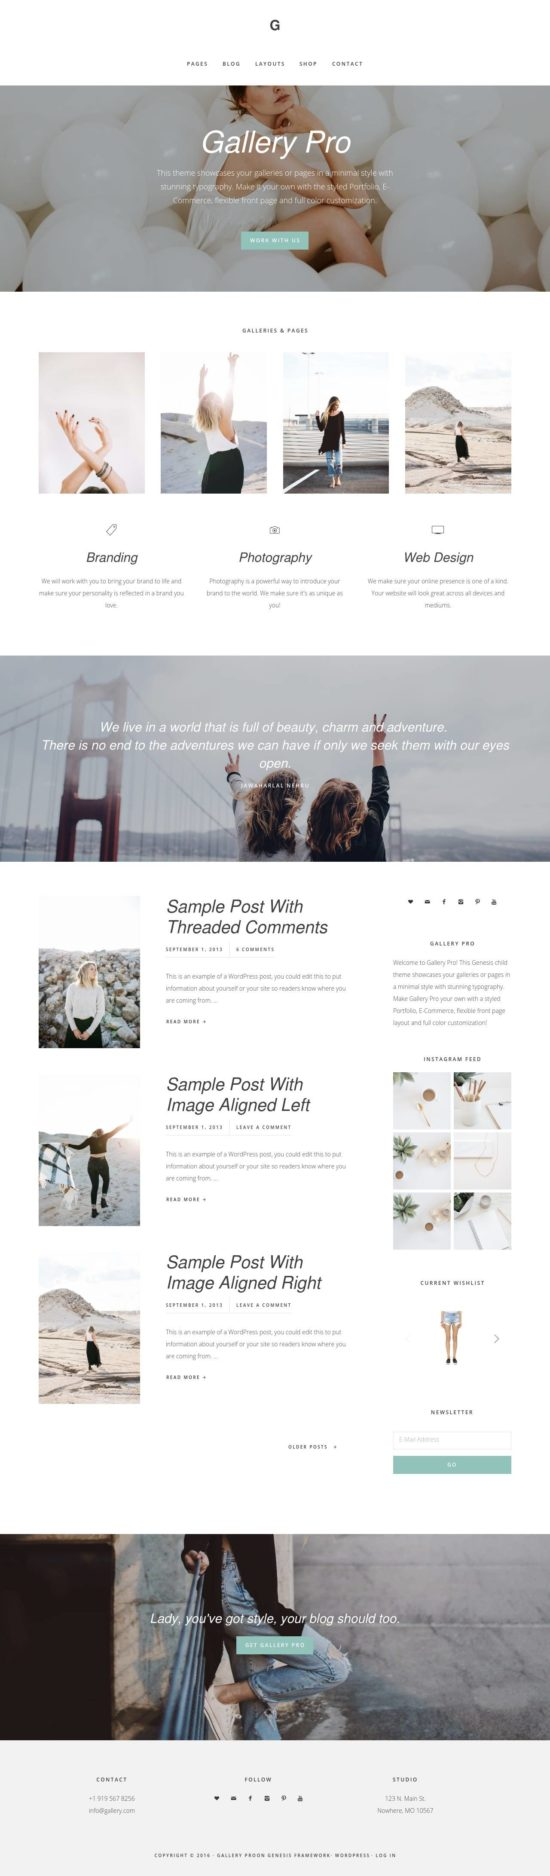 gallery pro studiopress wordpress theme 01 550x1876 - Gallery PRO WordPress Theme